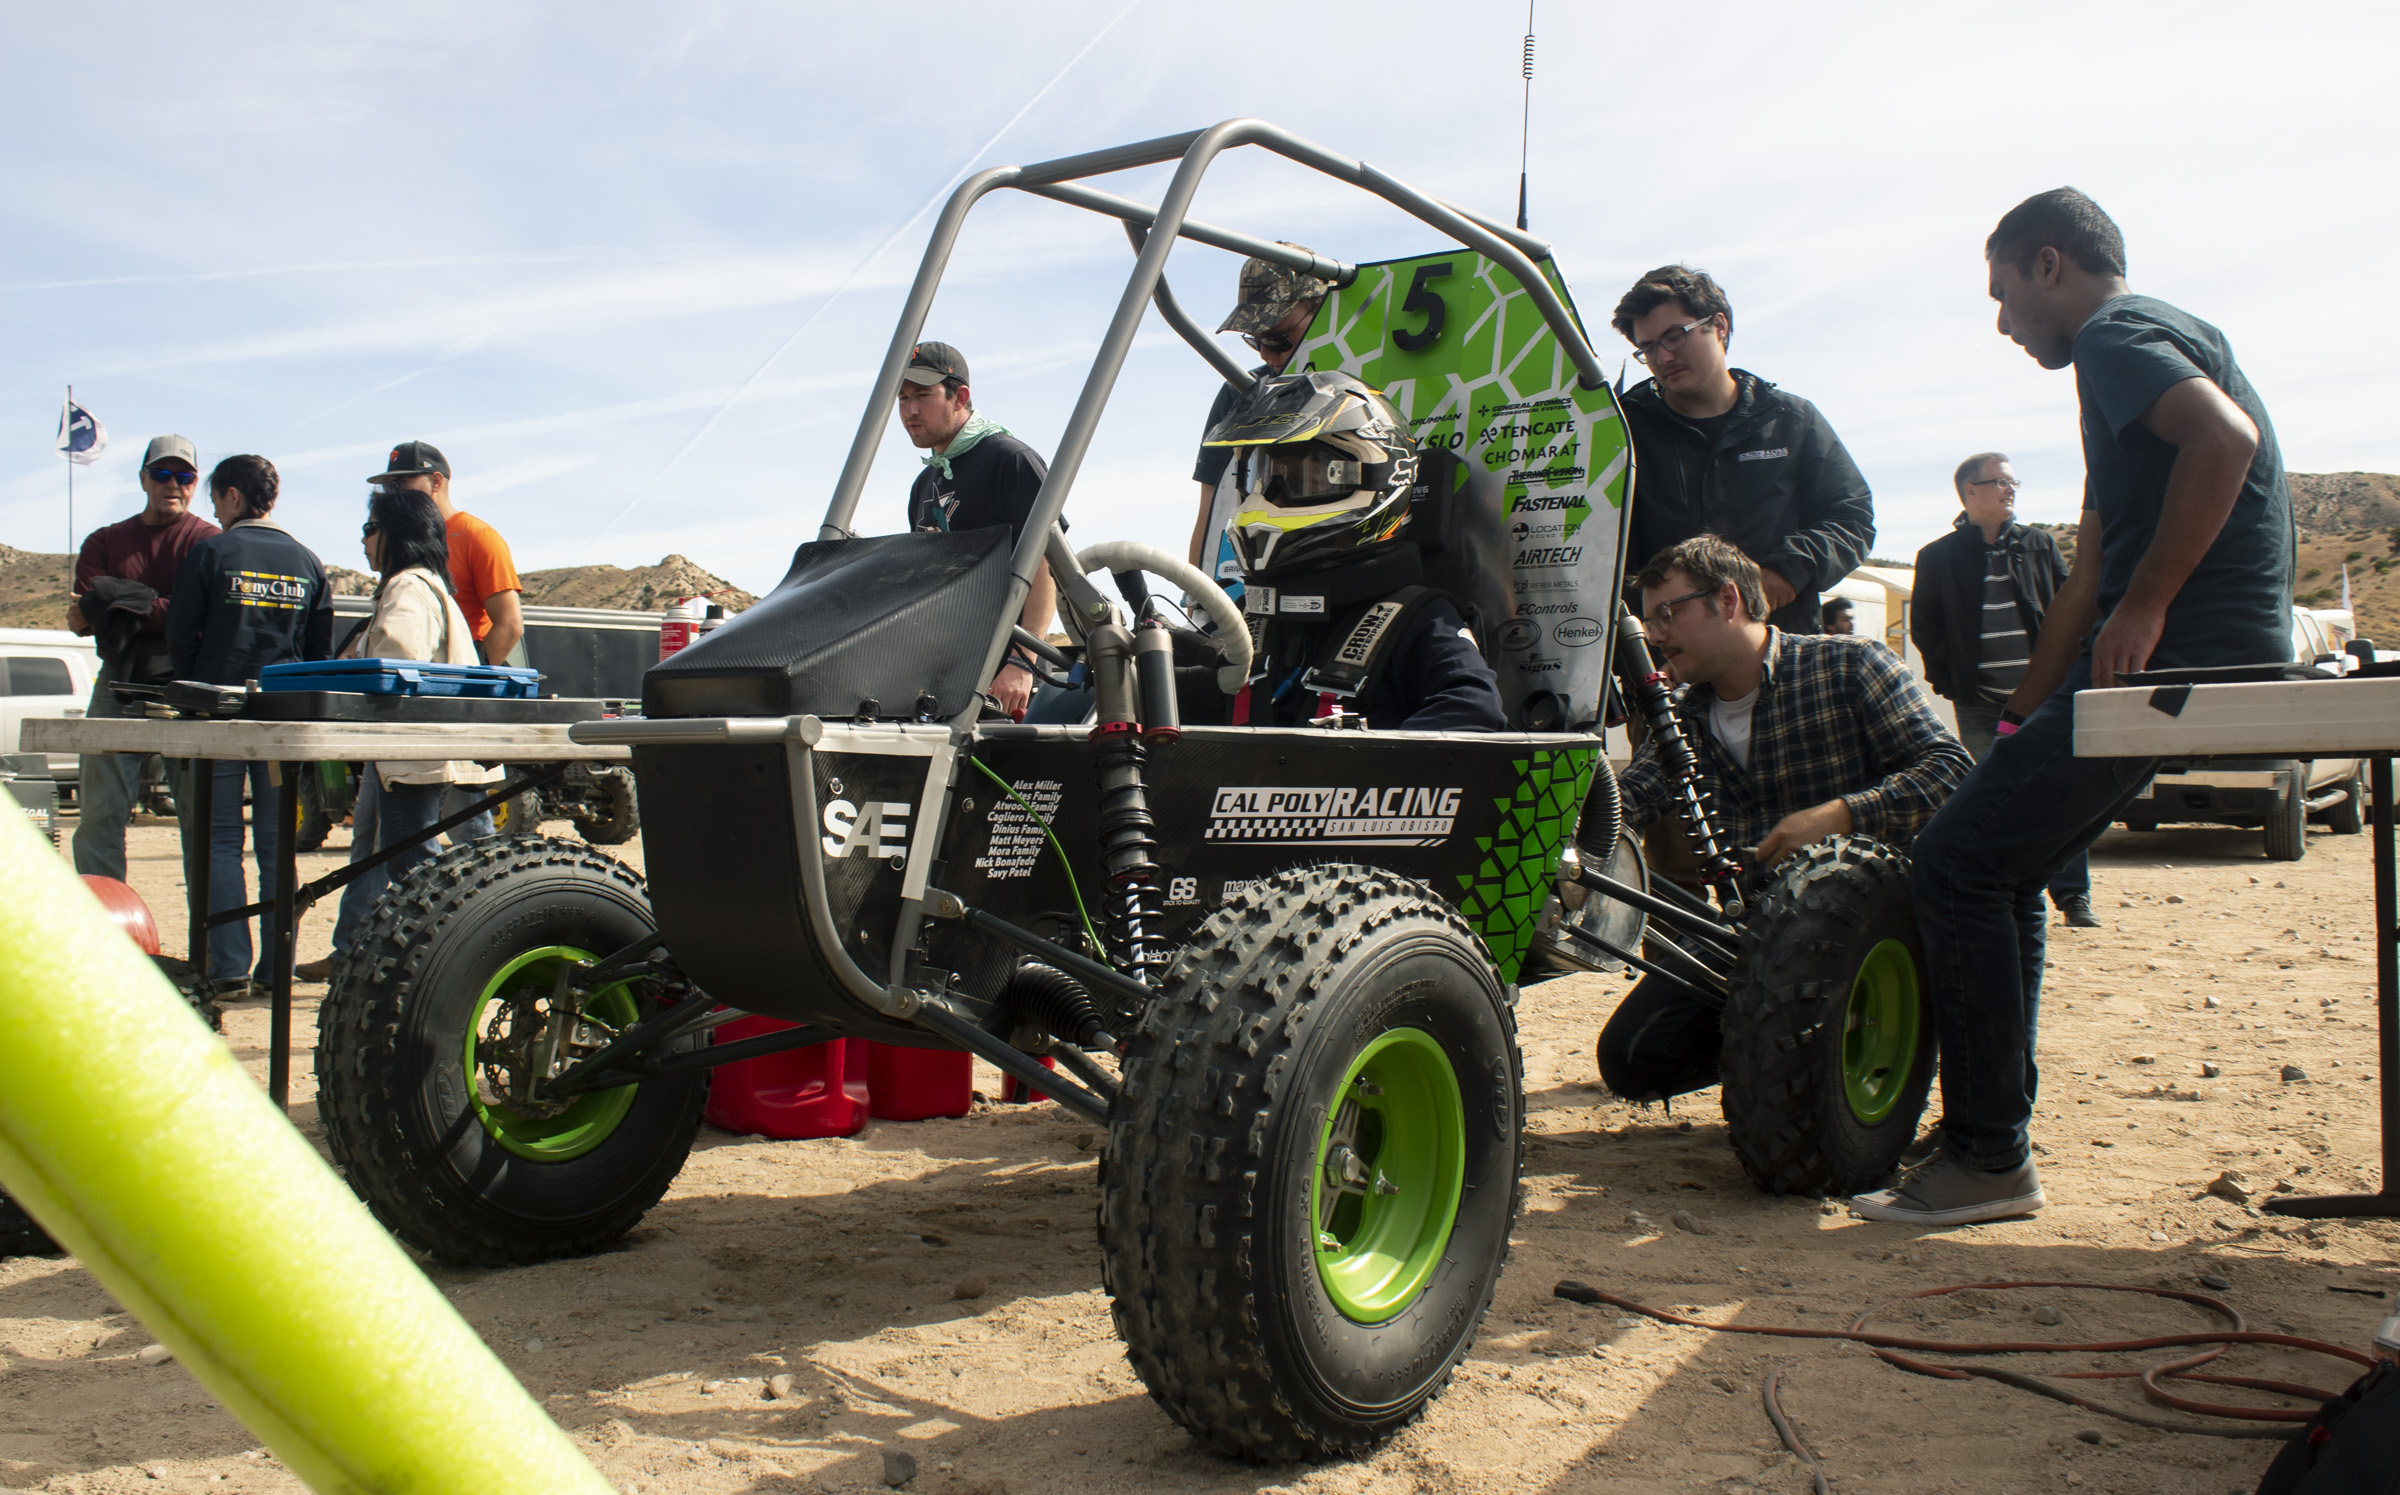 BAJA SAE - Our vehicle is a high performance, off-roading vehicle.